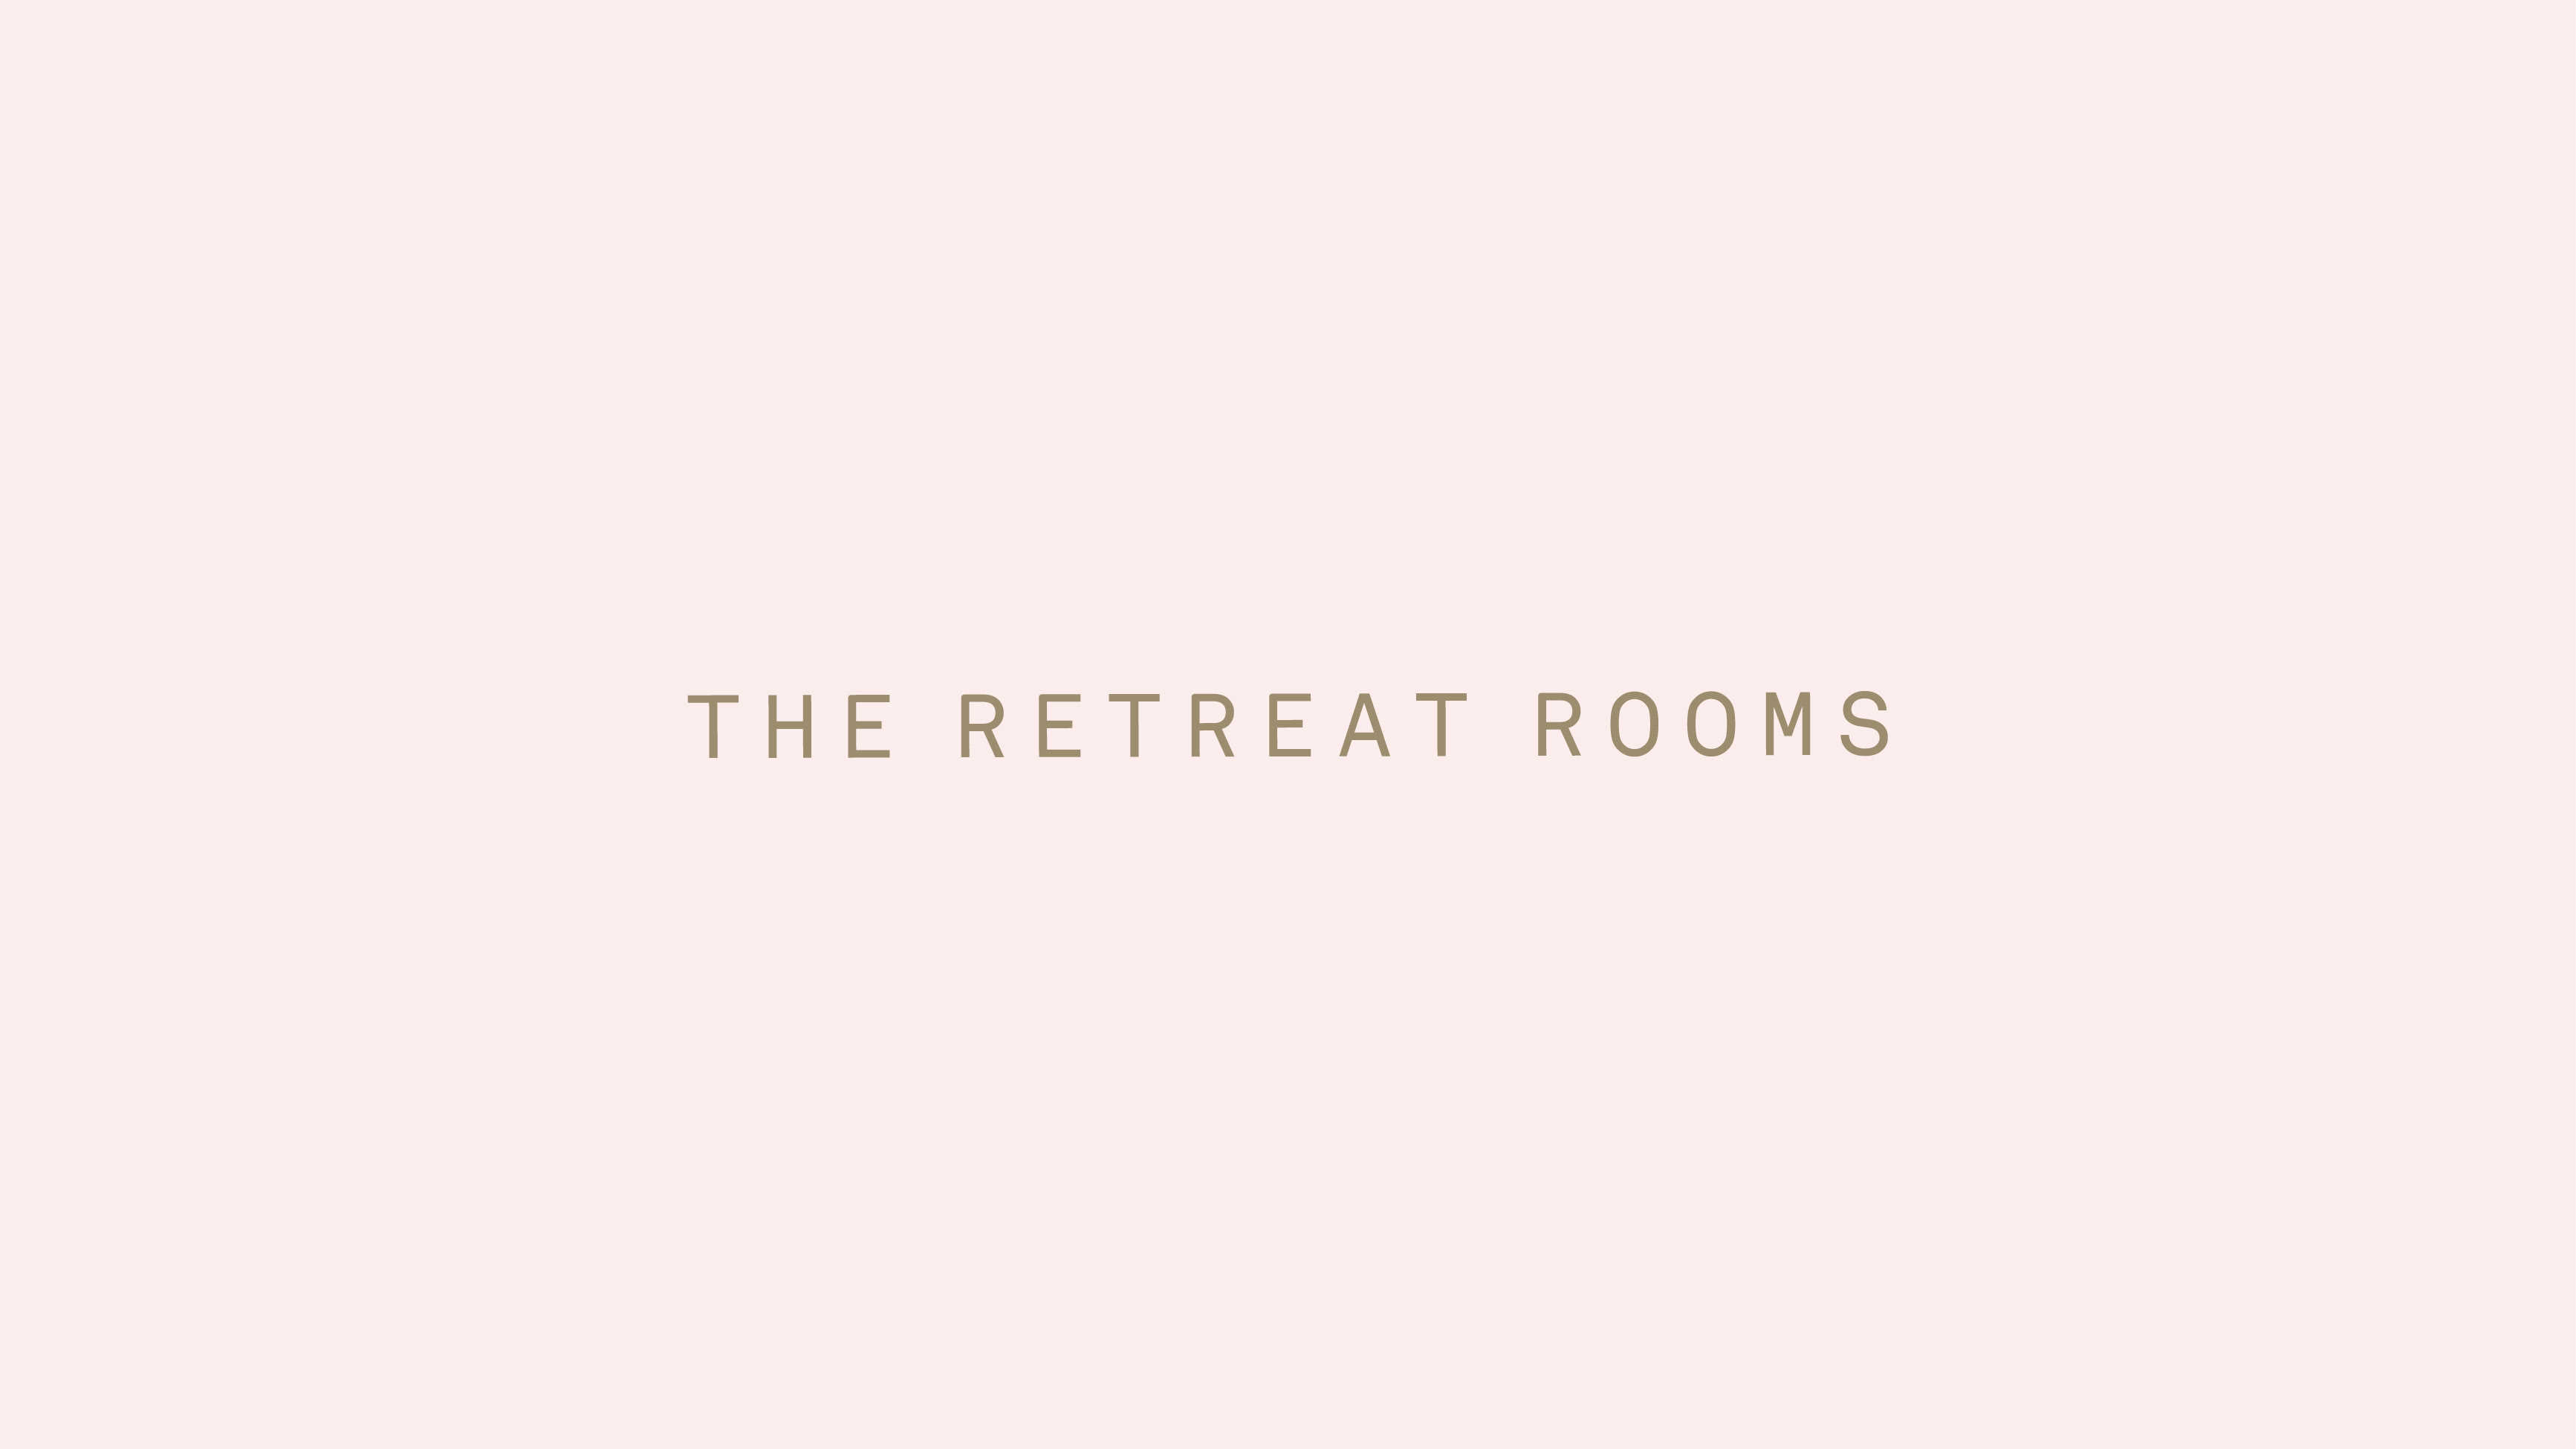 The Retreat Rooms